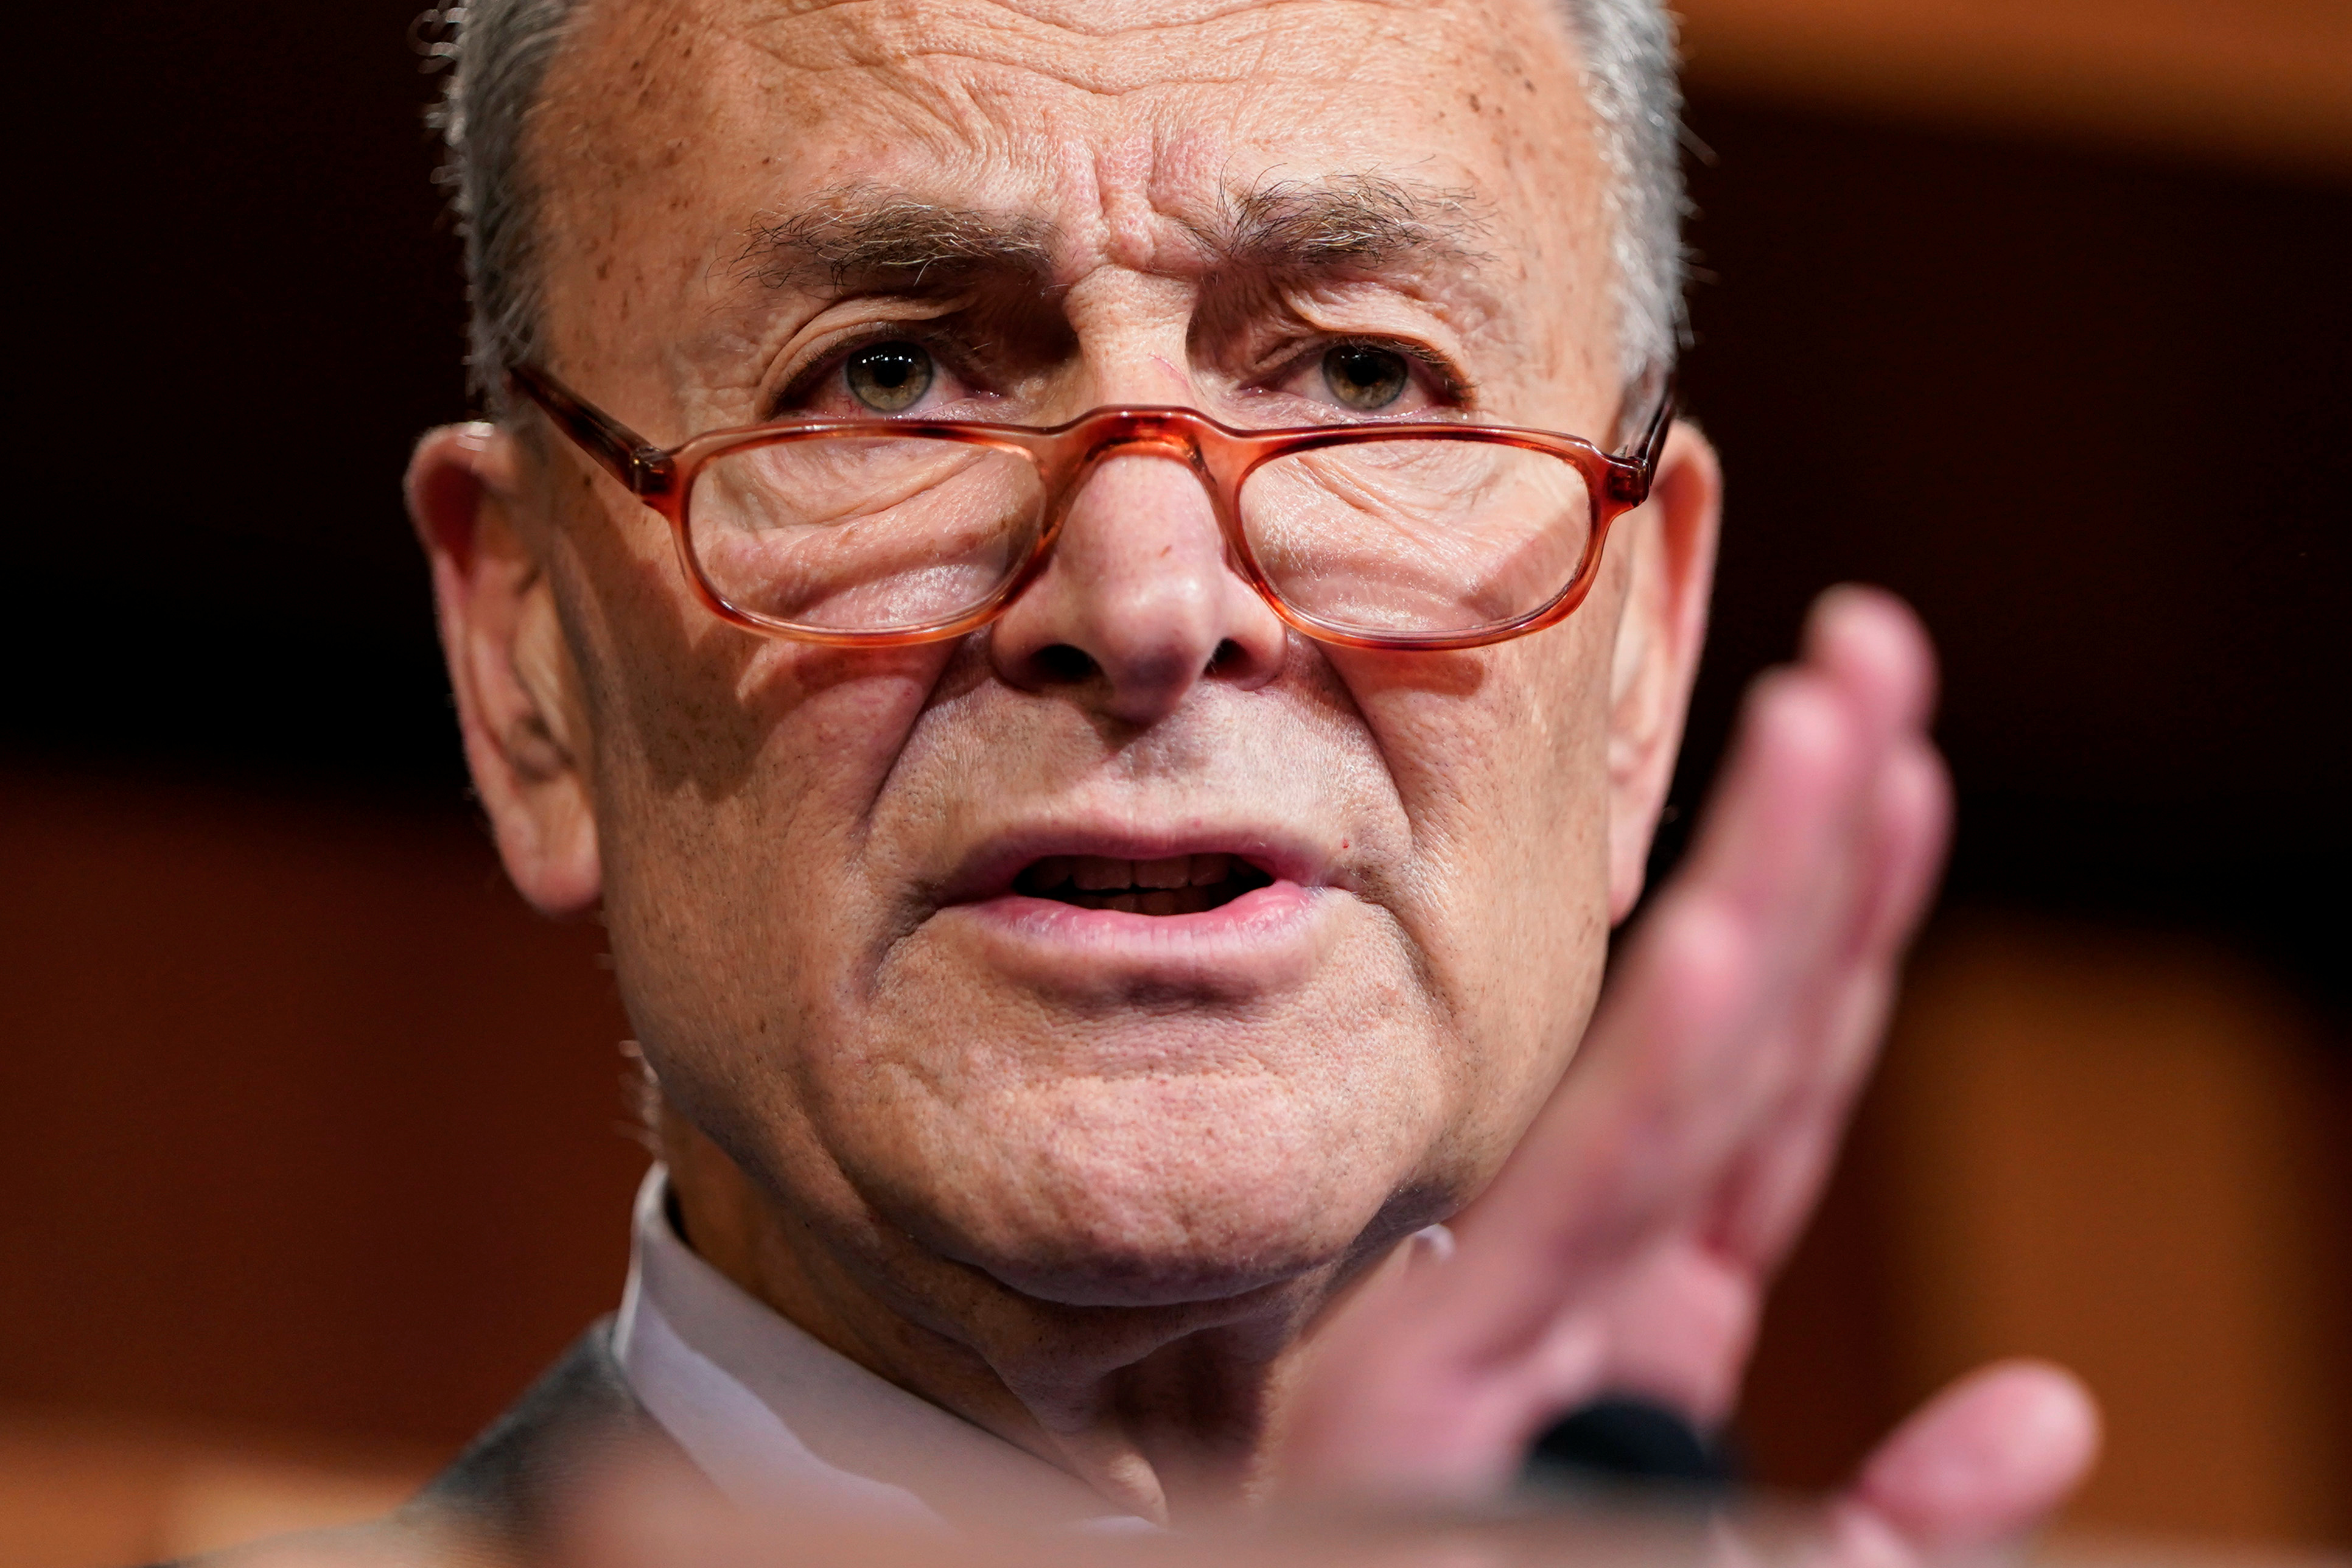 Senate Minority Leader Chuck Schumer (D-NY) speaks during media briefing after the impeachment trial of U.S. President Donald Trump ended for the day in Washington, U.S., January 25, 2020.  (Photo: Joshua Roberts/Reuters)